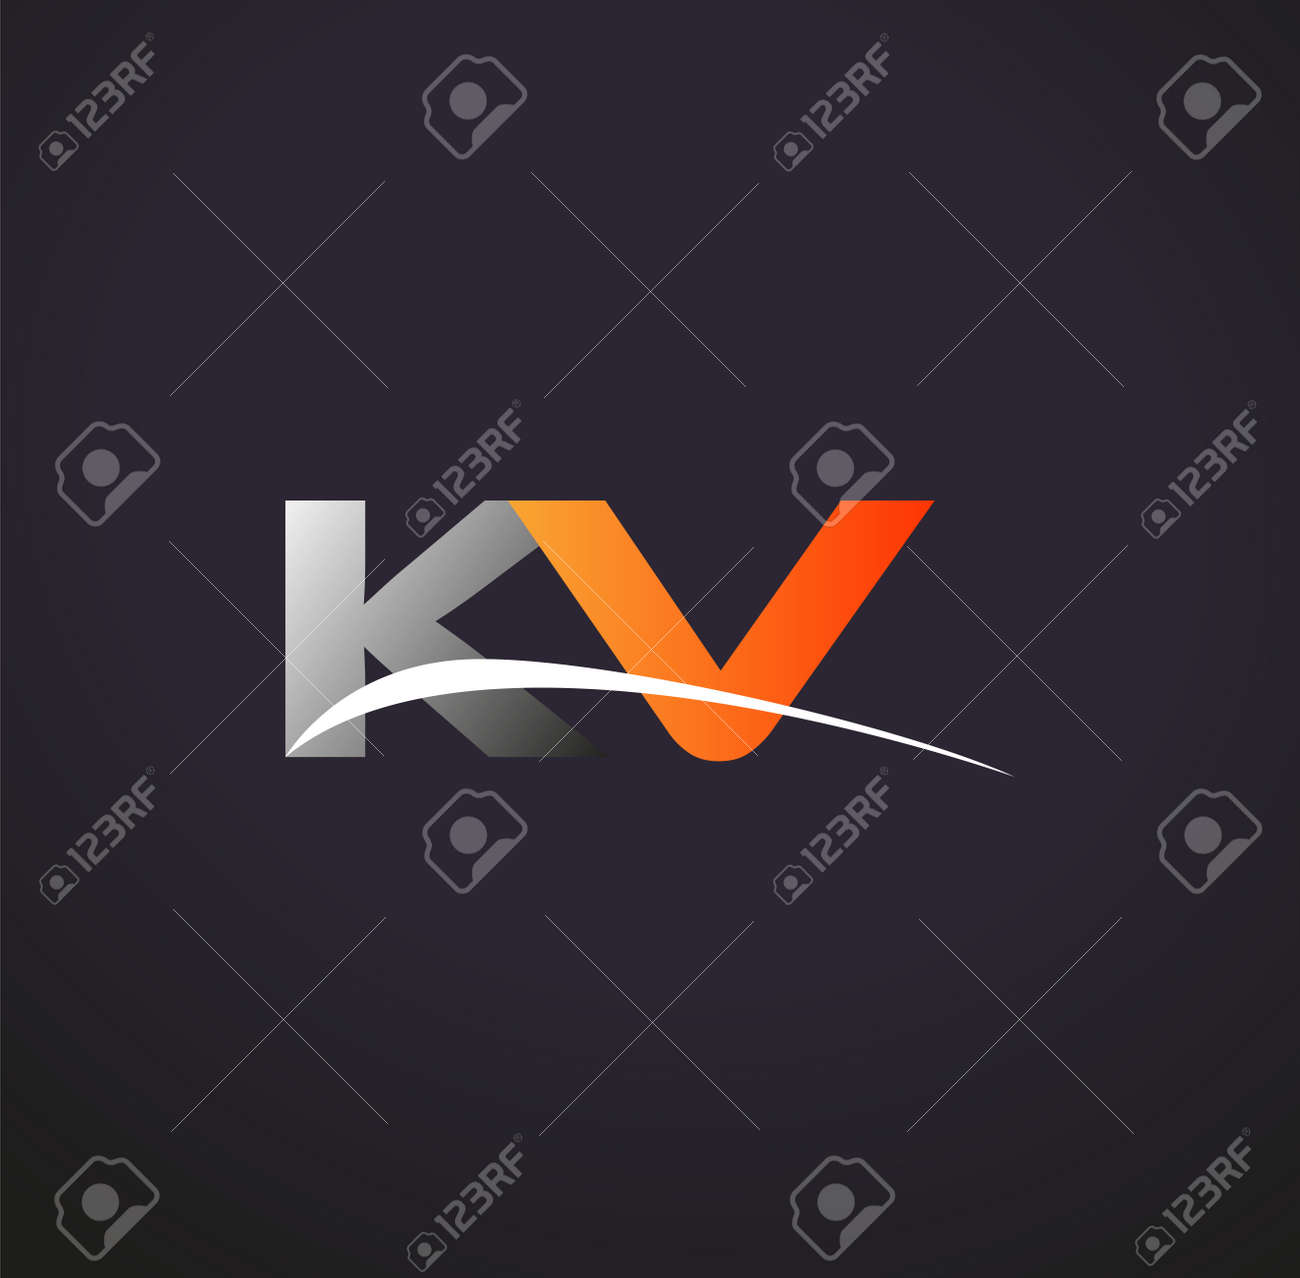 initial letter KV logotype company name colored grey and orange swoosh design. isolated on black background. - 163280783